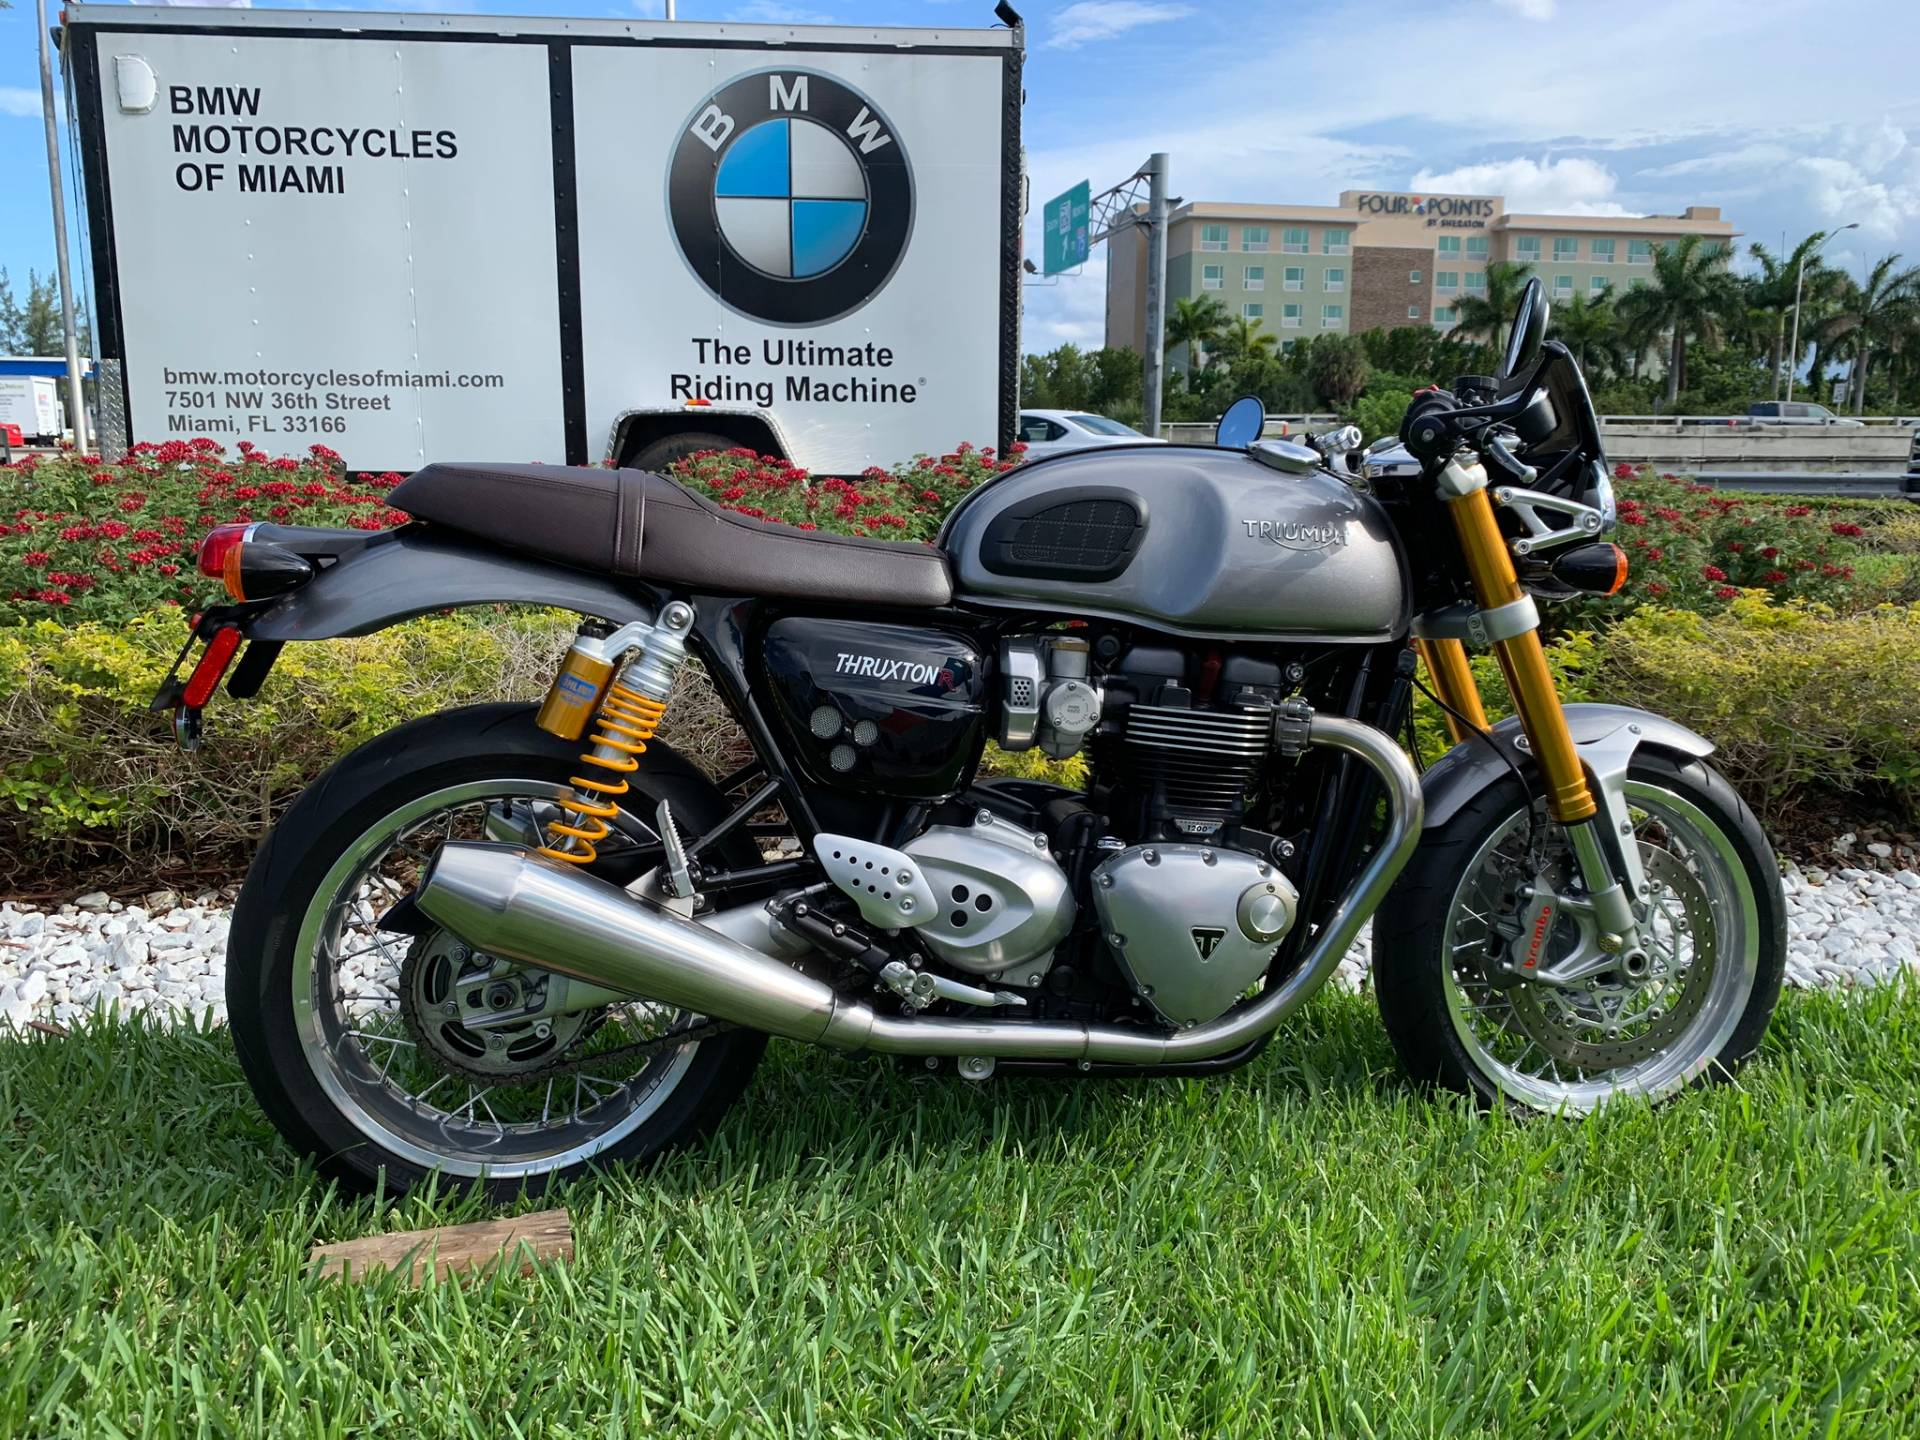 Used 2016 Triumph Thruxton 1200 R for sale,  2016 Triumph Thruxton 1200R for sale,  Triumph Thruxton1200R,  Used ThruxtonR, Cafe. Cruiser, BMW Motorcycles of Miami, Motorcycles of Miami, Motorcycles Miami, New Motorcycles, Used Motorcycles, pre-owned. #BMWMotorcyclesOfMiami #MotorcyclesOfMiami #Moto - Photo 21